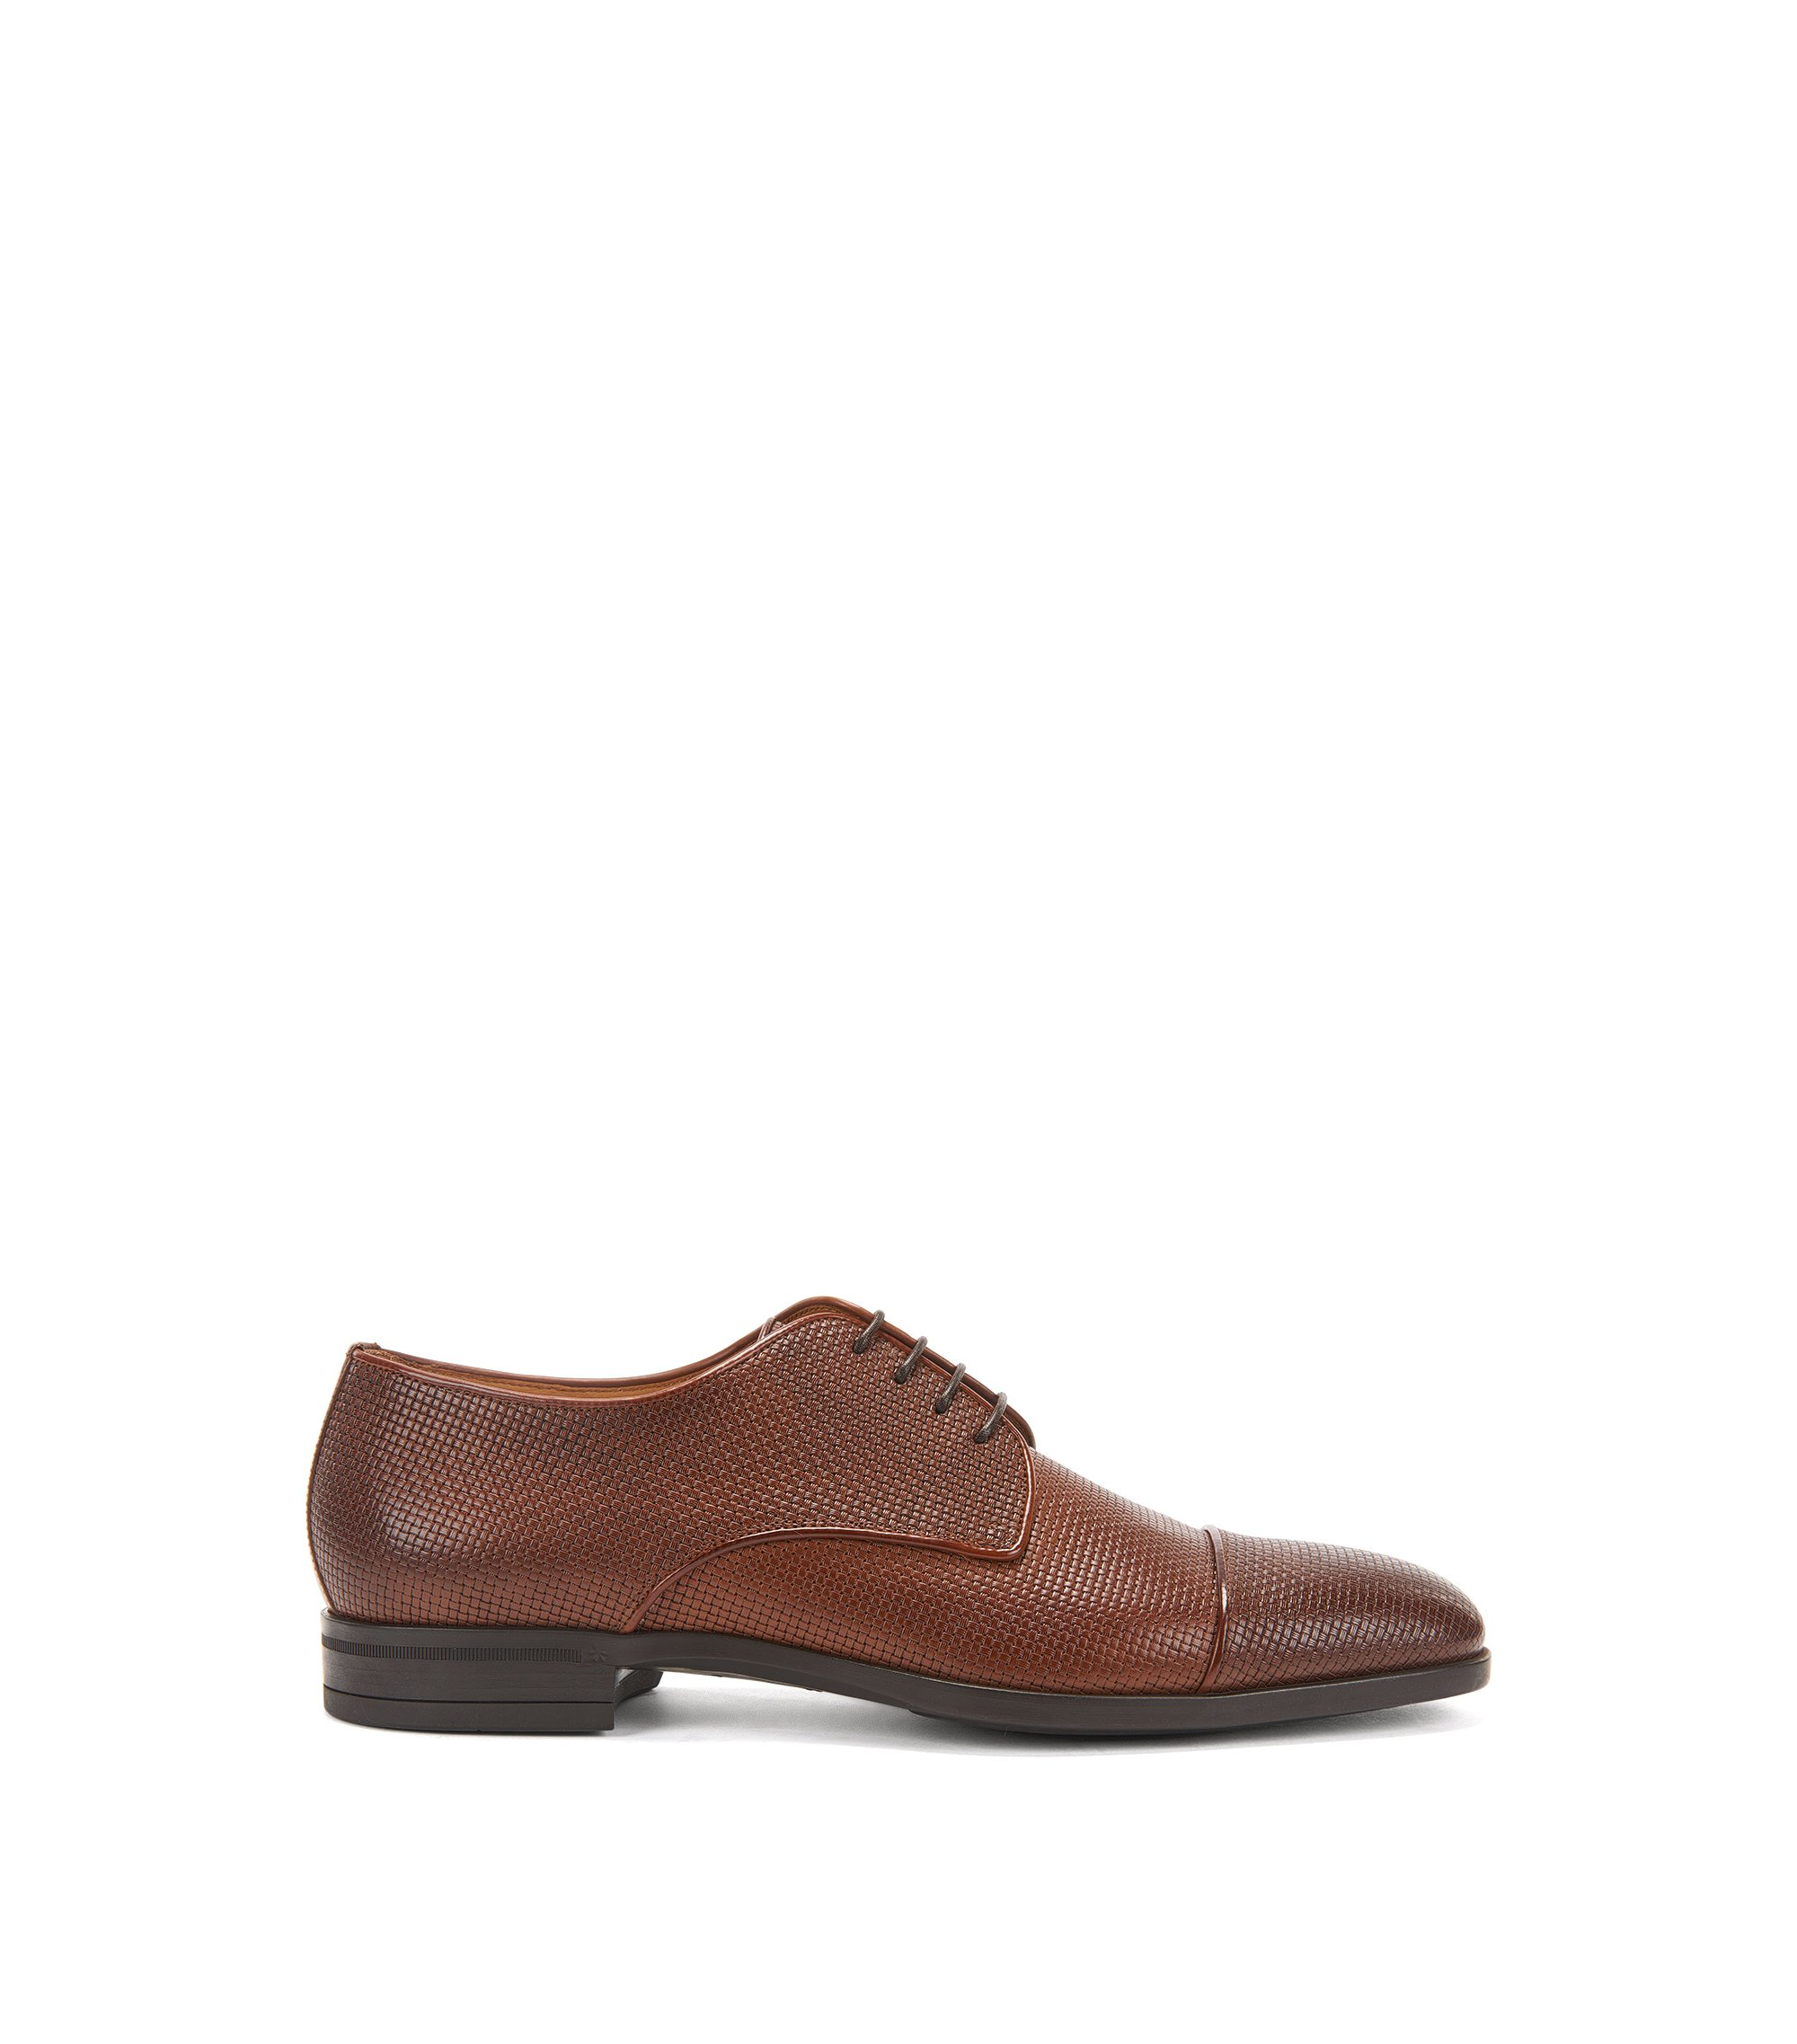 Embossed Leather Derby Shoe | Kensington Derb, Brown